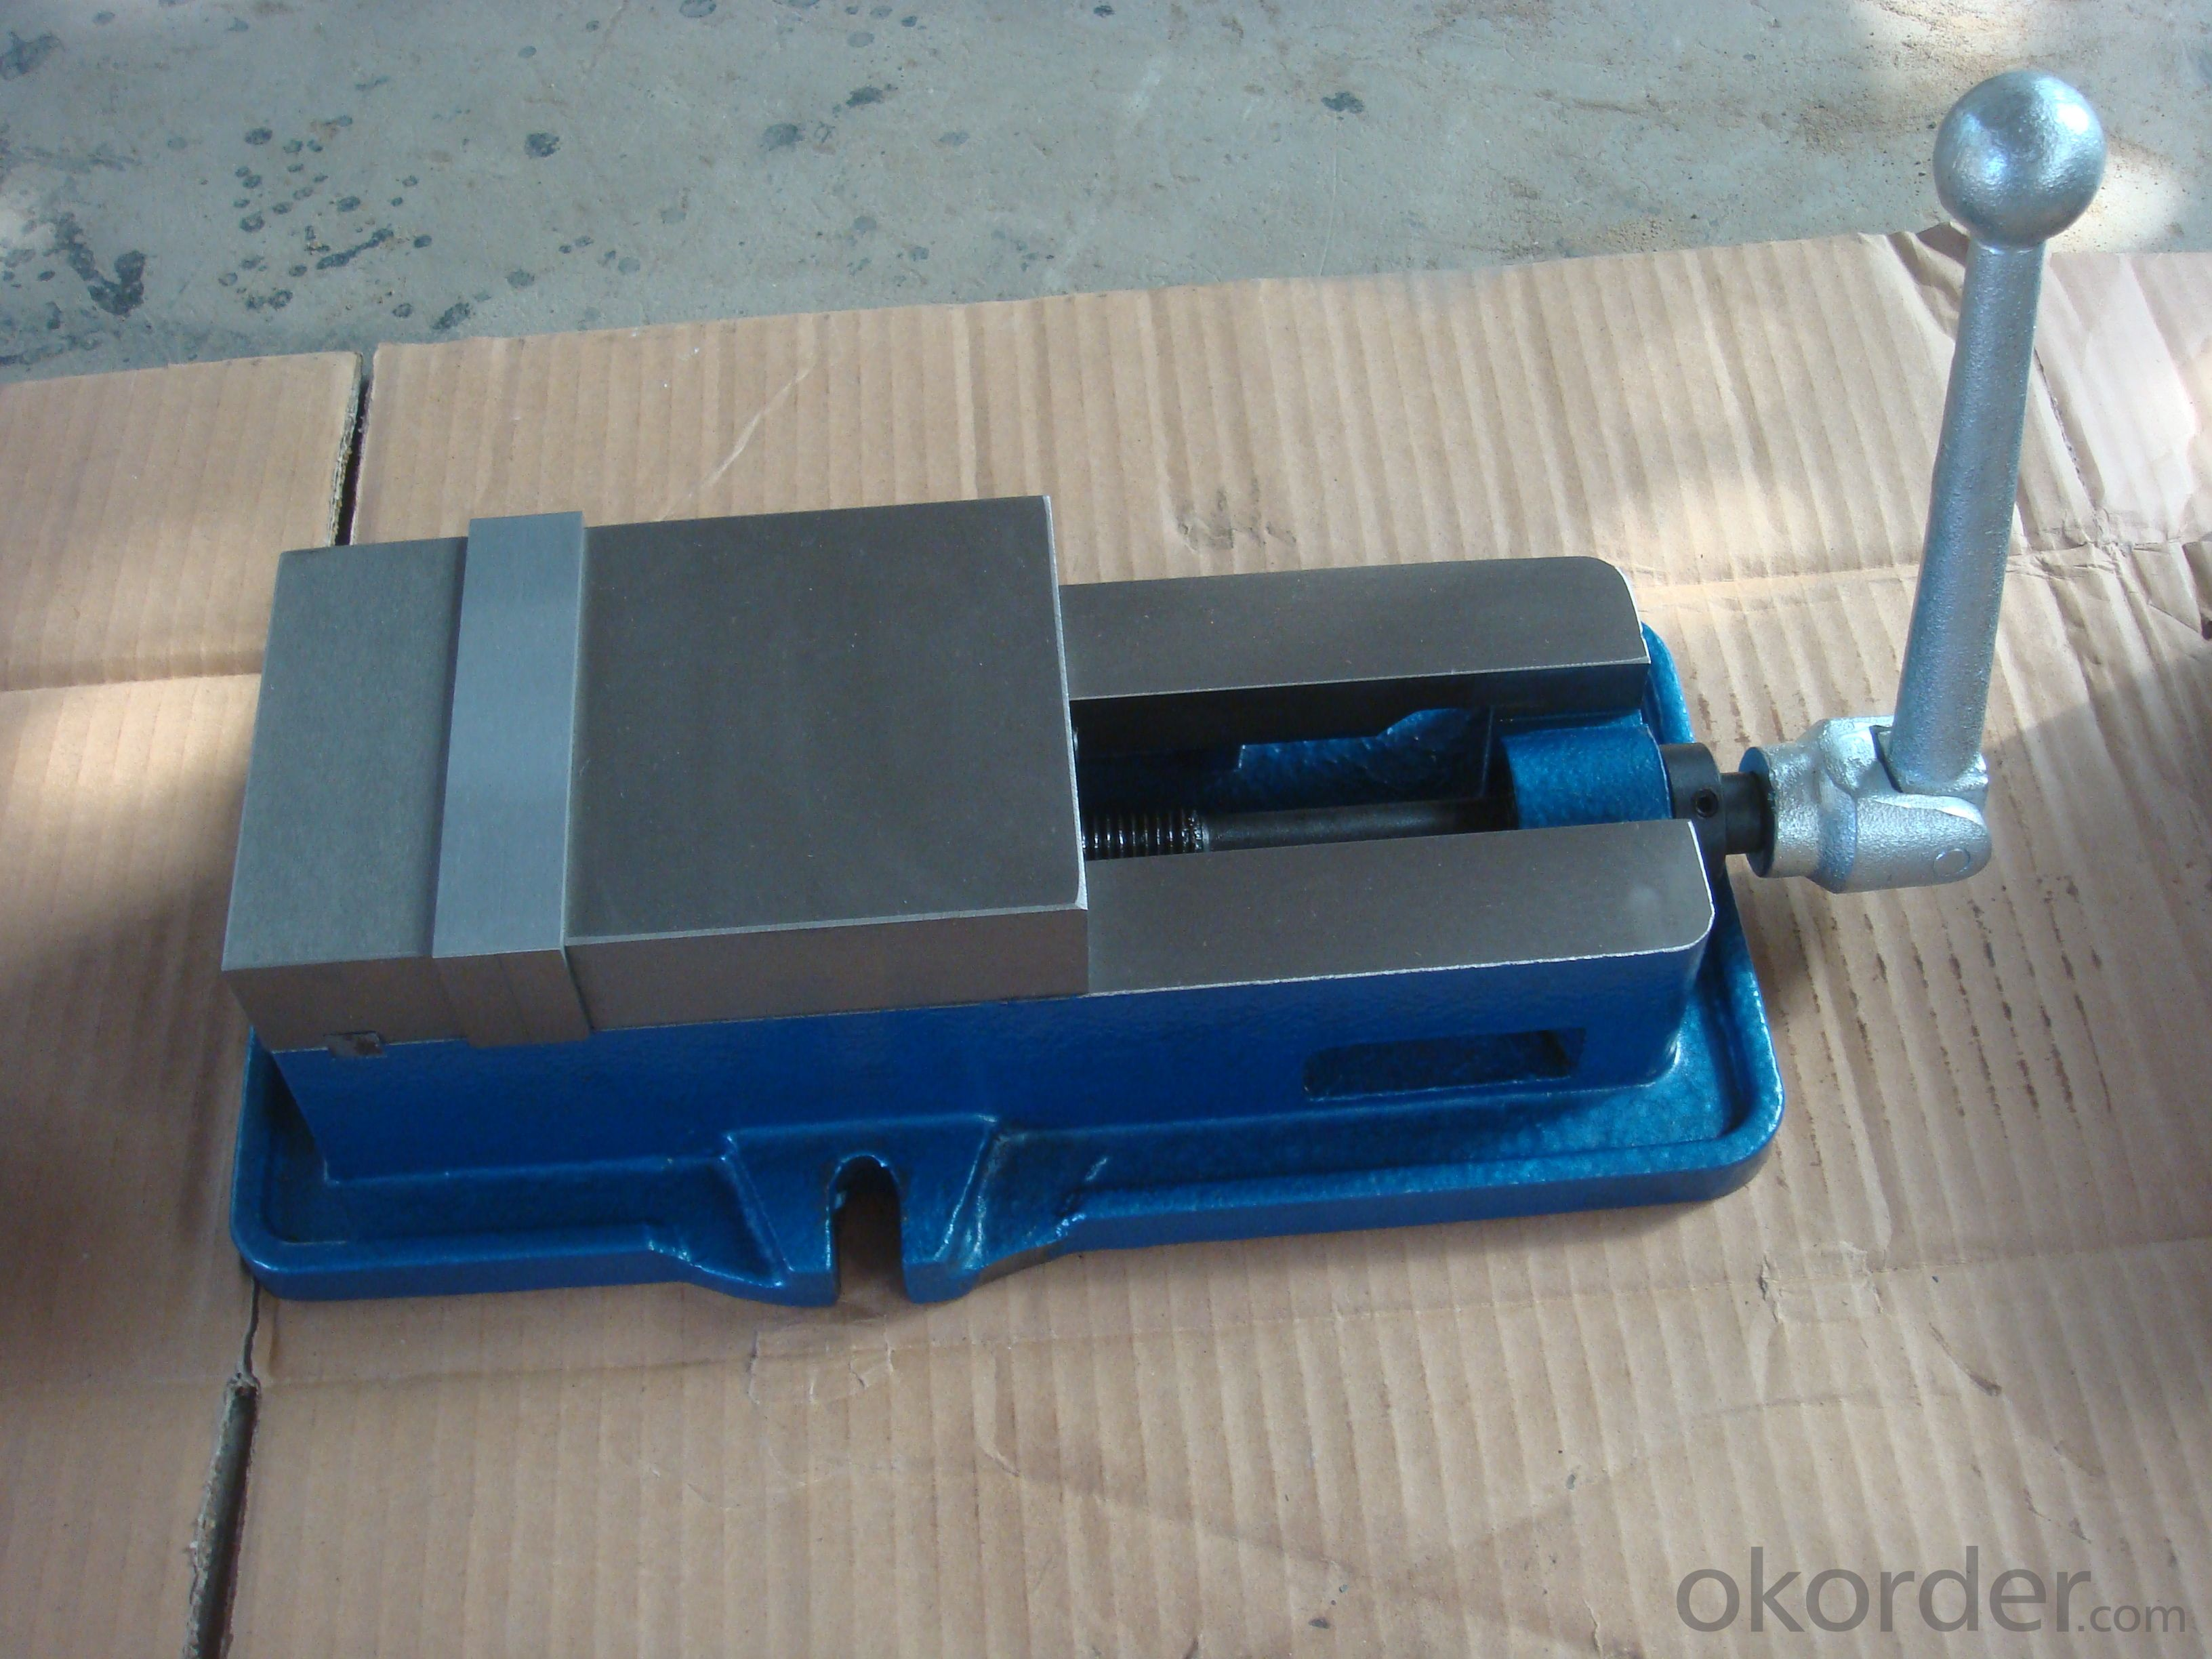 QM16160 ACCU-LOCK MACHINE VICE WITHOUT SWIVEL BASE